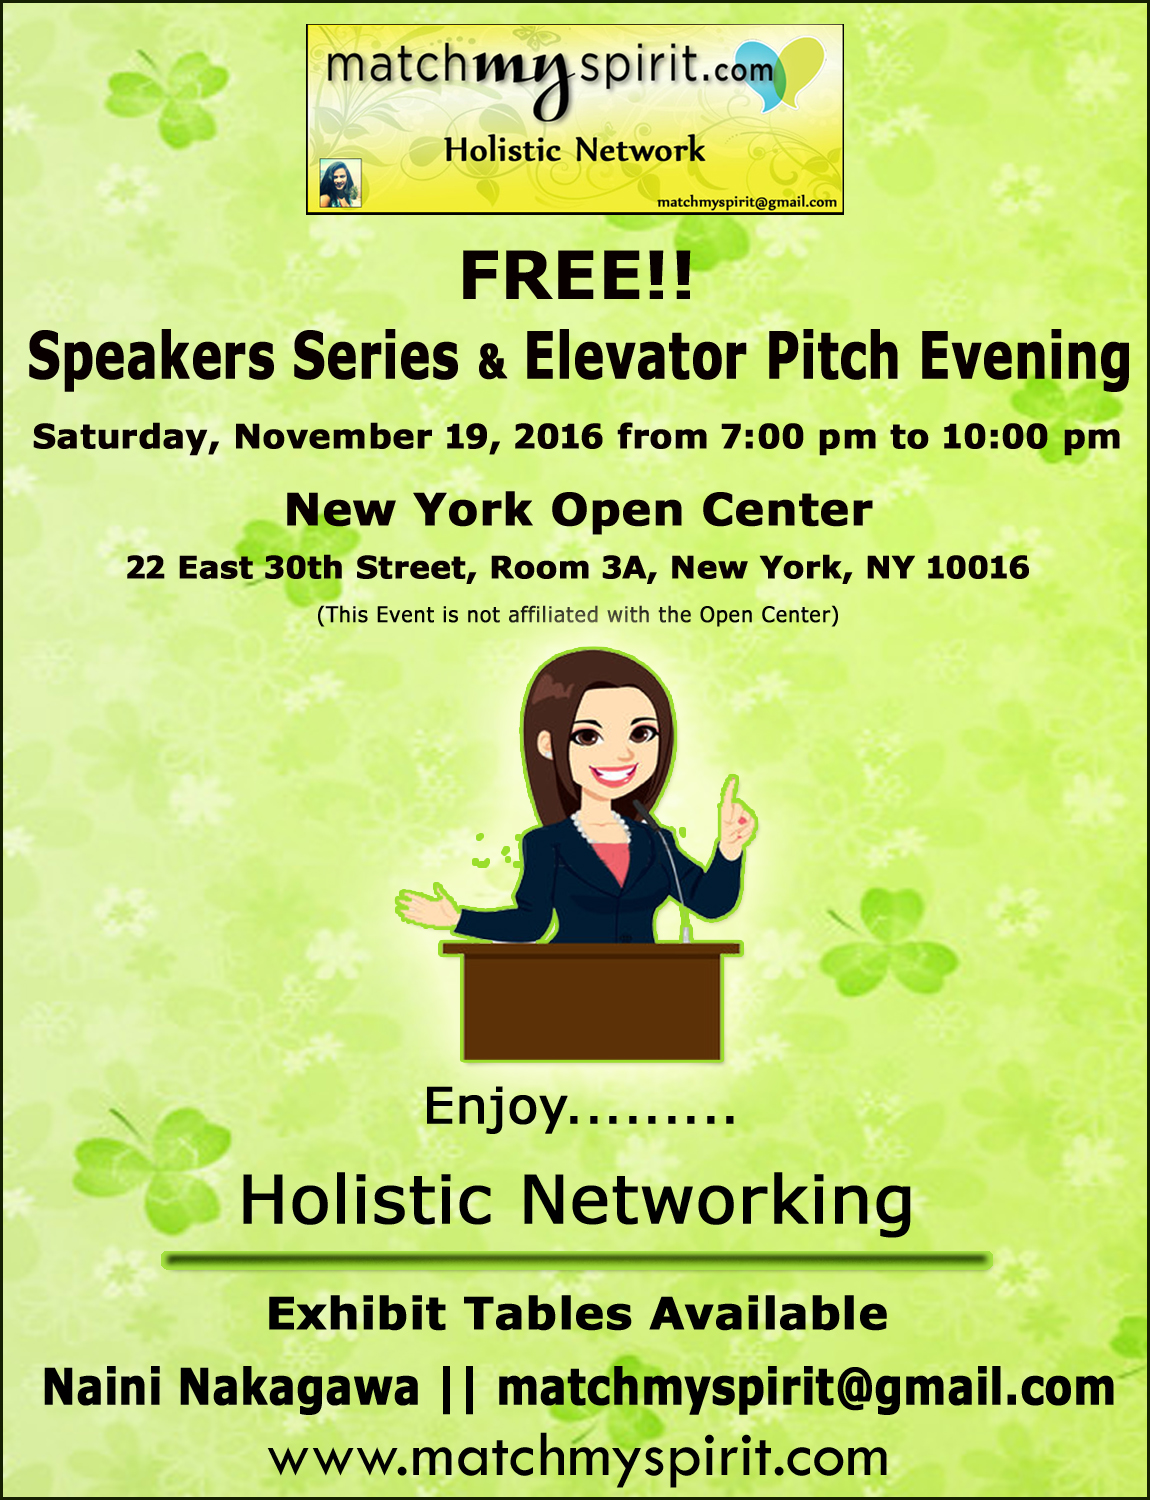 FREE!! Speakers Series & Elevator Pitch Evening